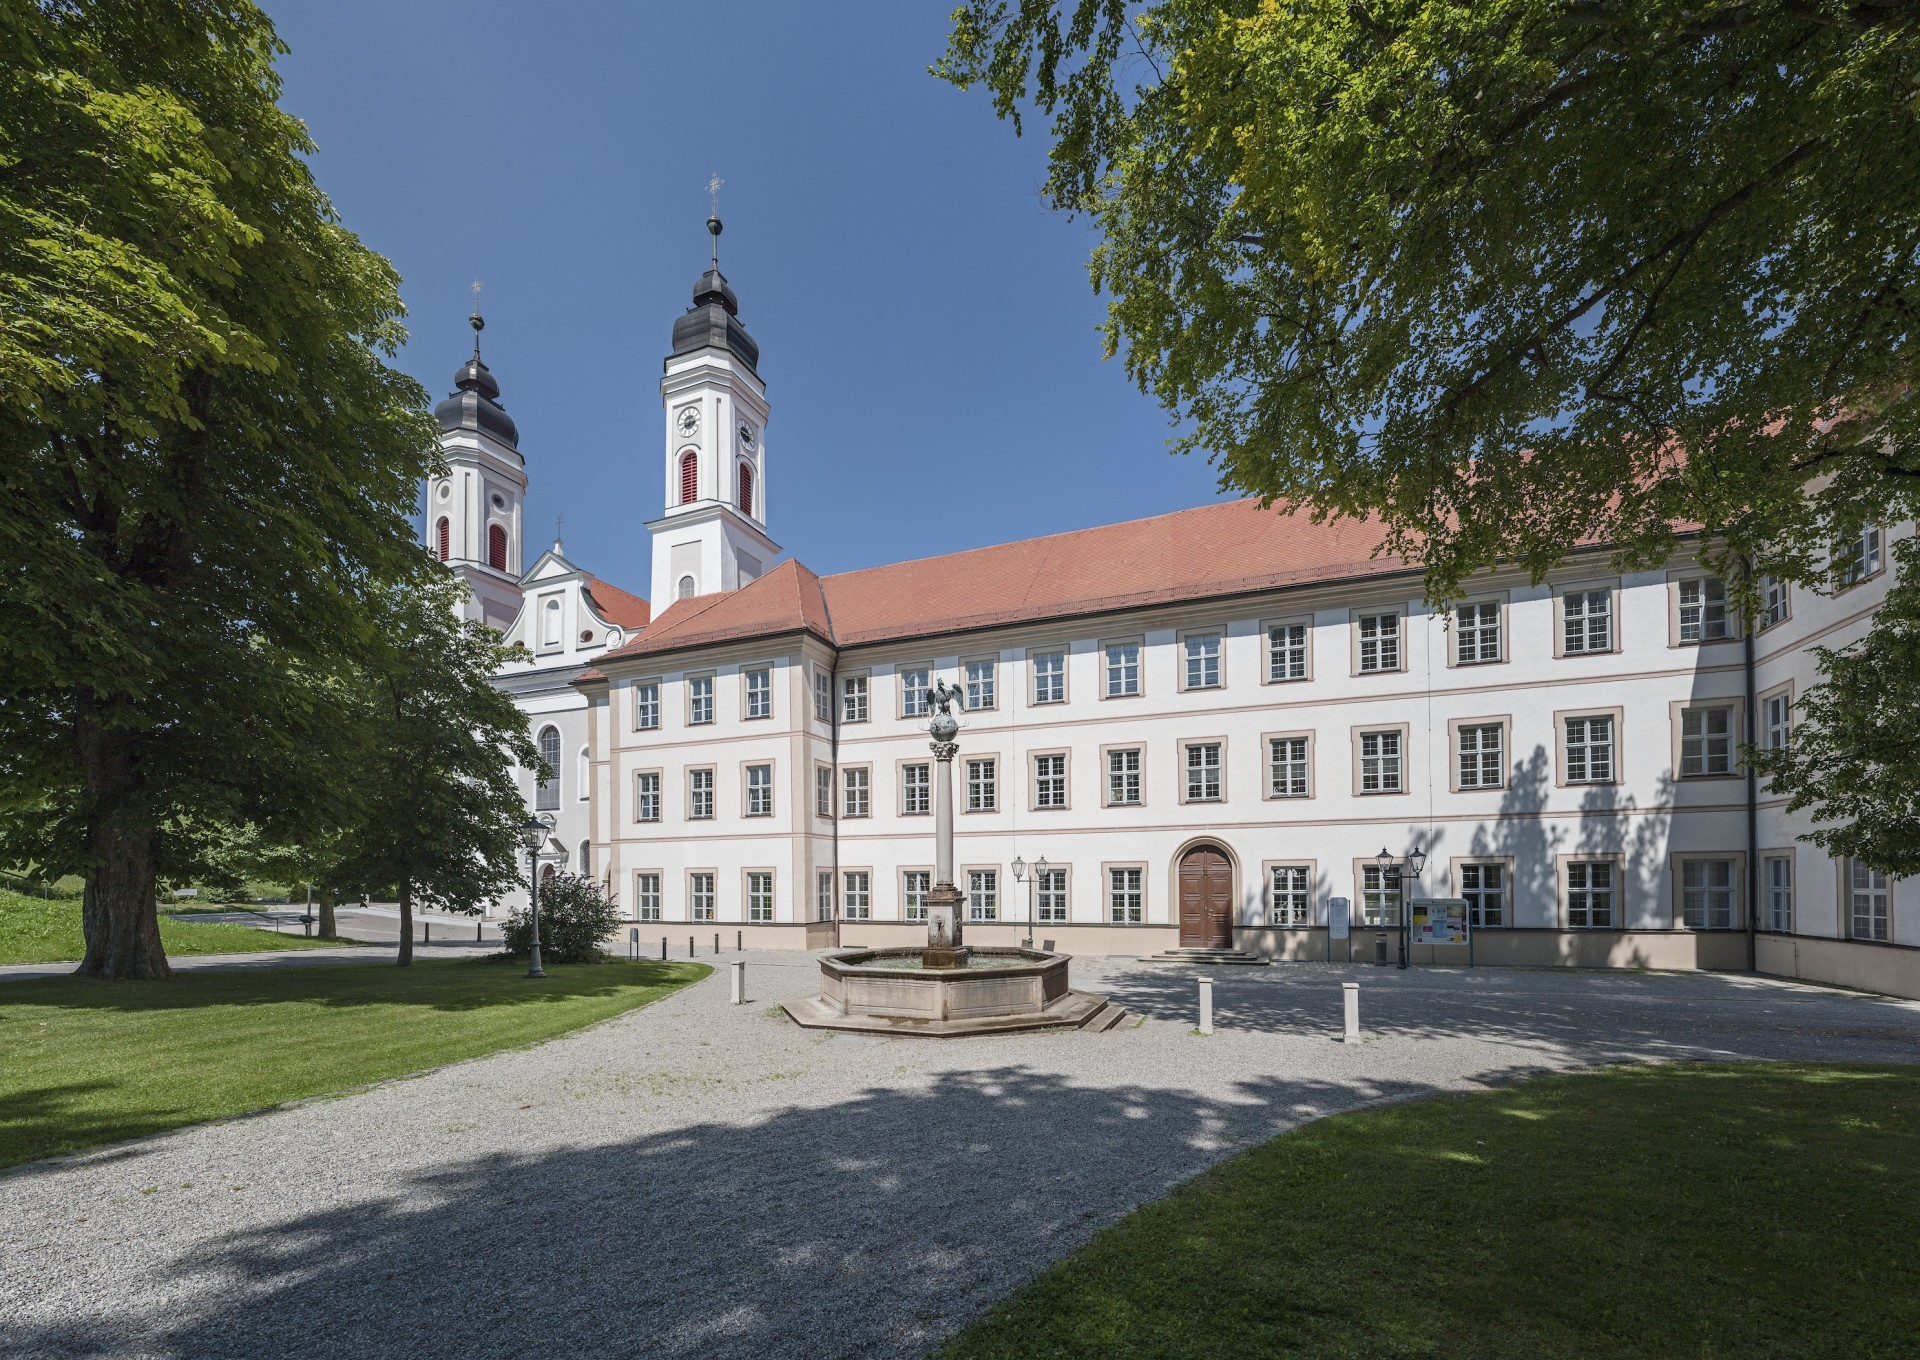 87660 Kloster Irsee - Haupteingang